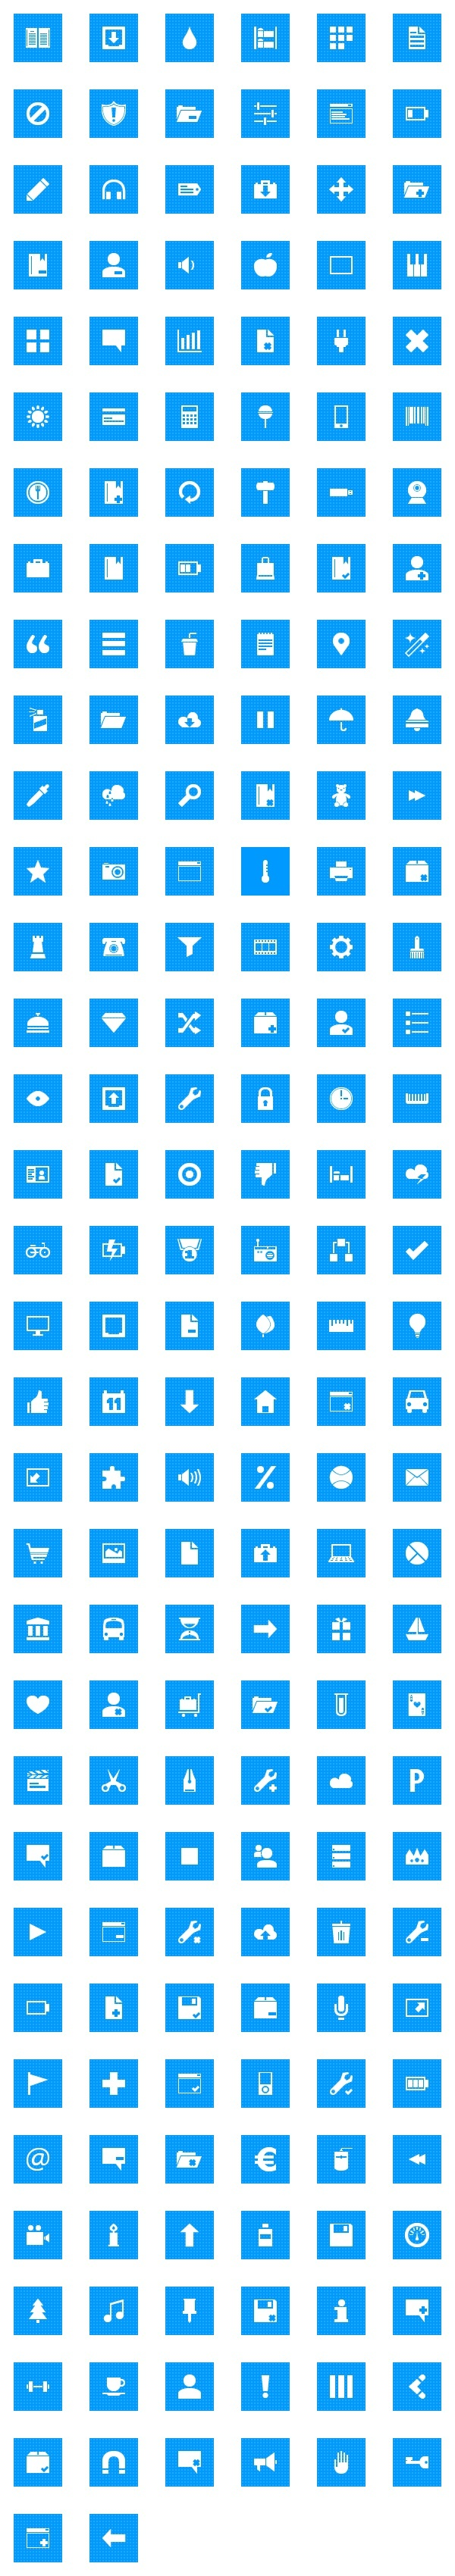 "The newest Metro styled pixel icon set from DryIcons.com, called ""Pixelistica Blue""."